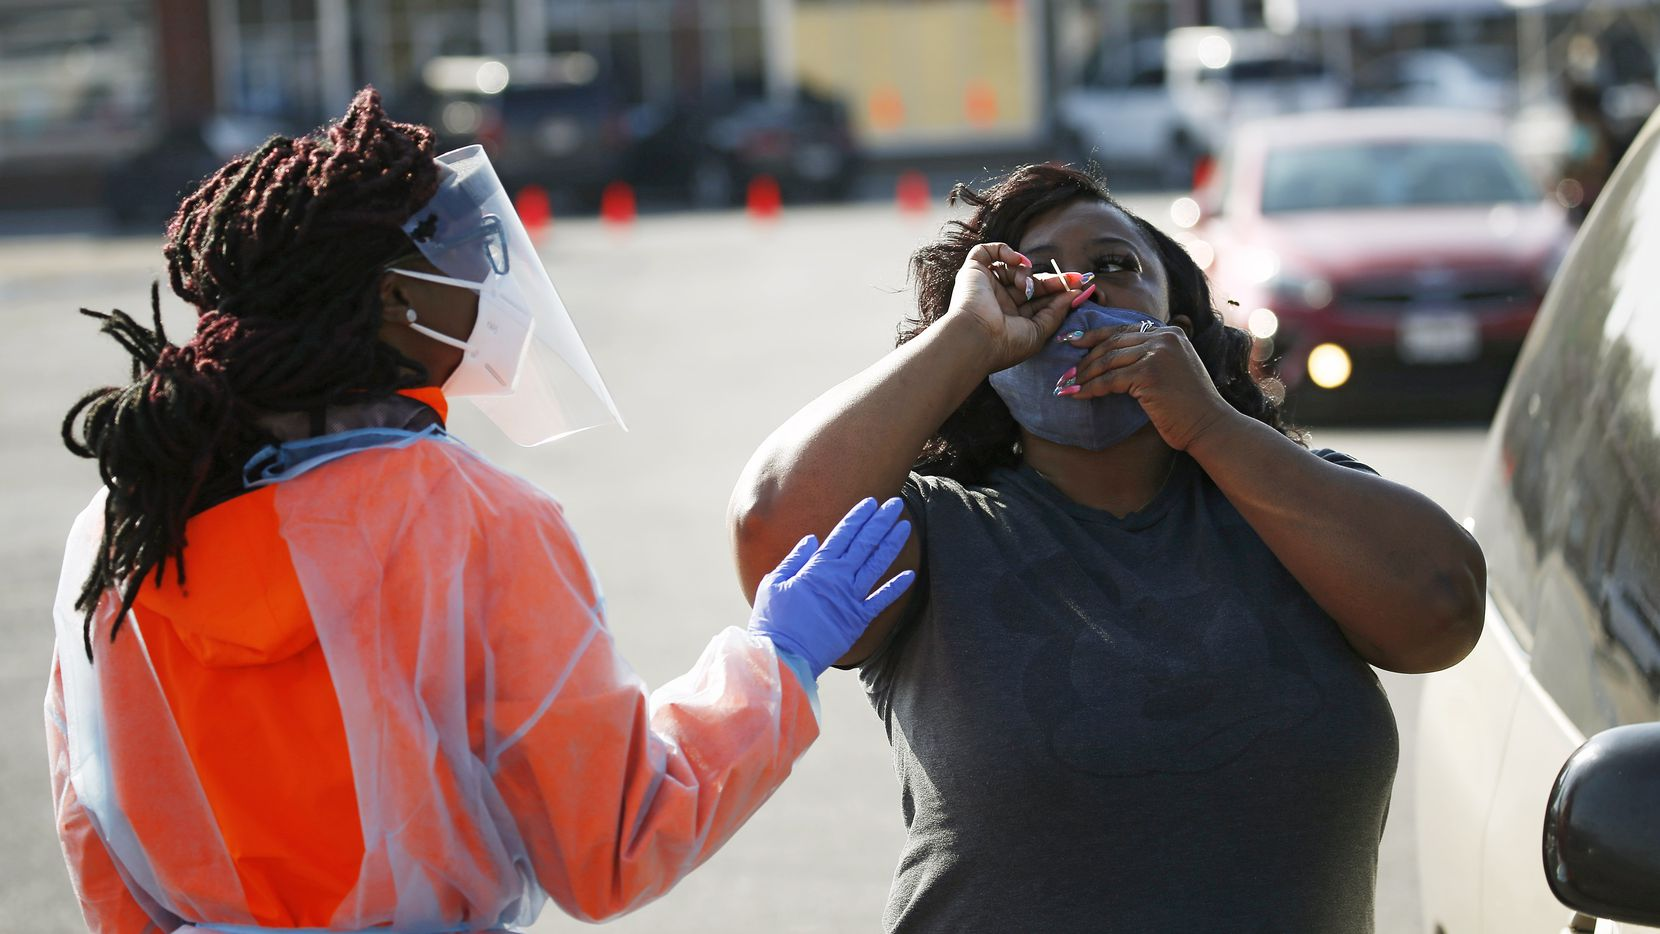 Lashara Allen (left), medical assistant helps as Charla Chappell of Dallas self-administers a COVID-19 swab test at Project Unity's free testing site at Glendale Shopping Center on Friday, November 13, 2020 in Dallas. The group is setting up daily testing sites at different locations daily.